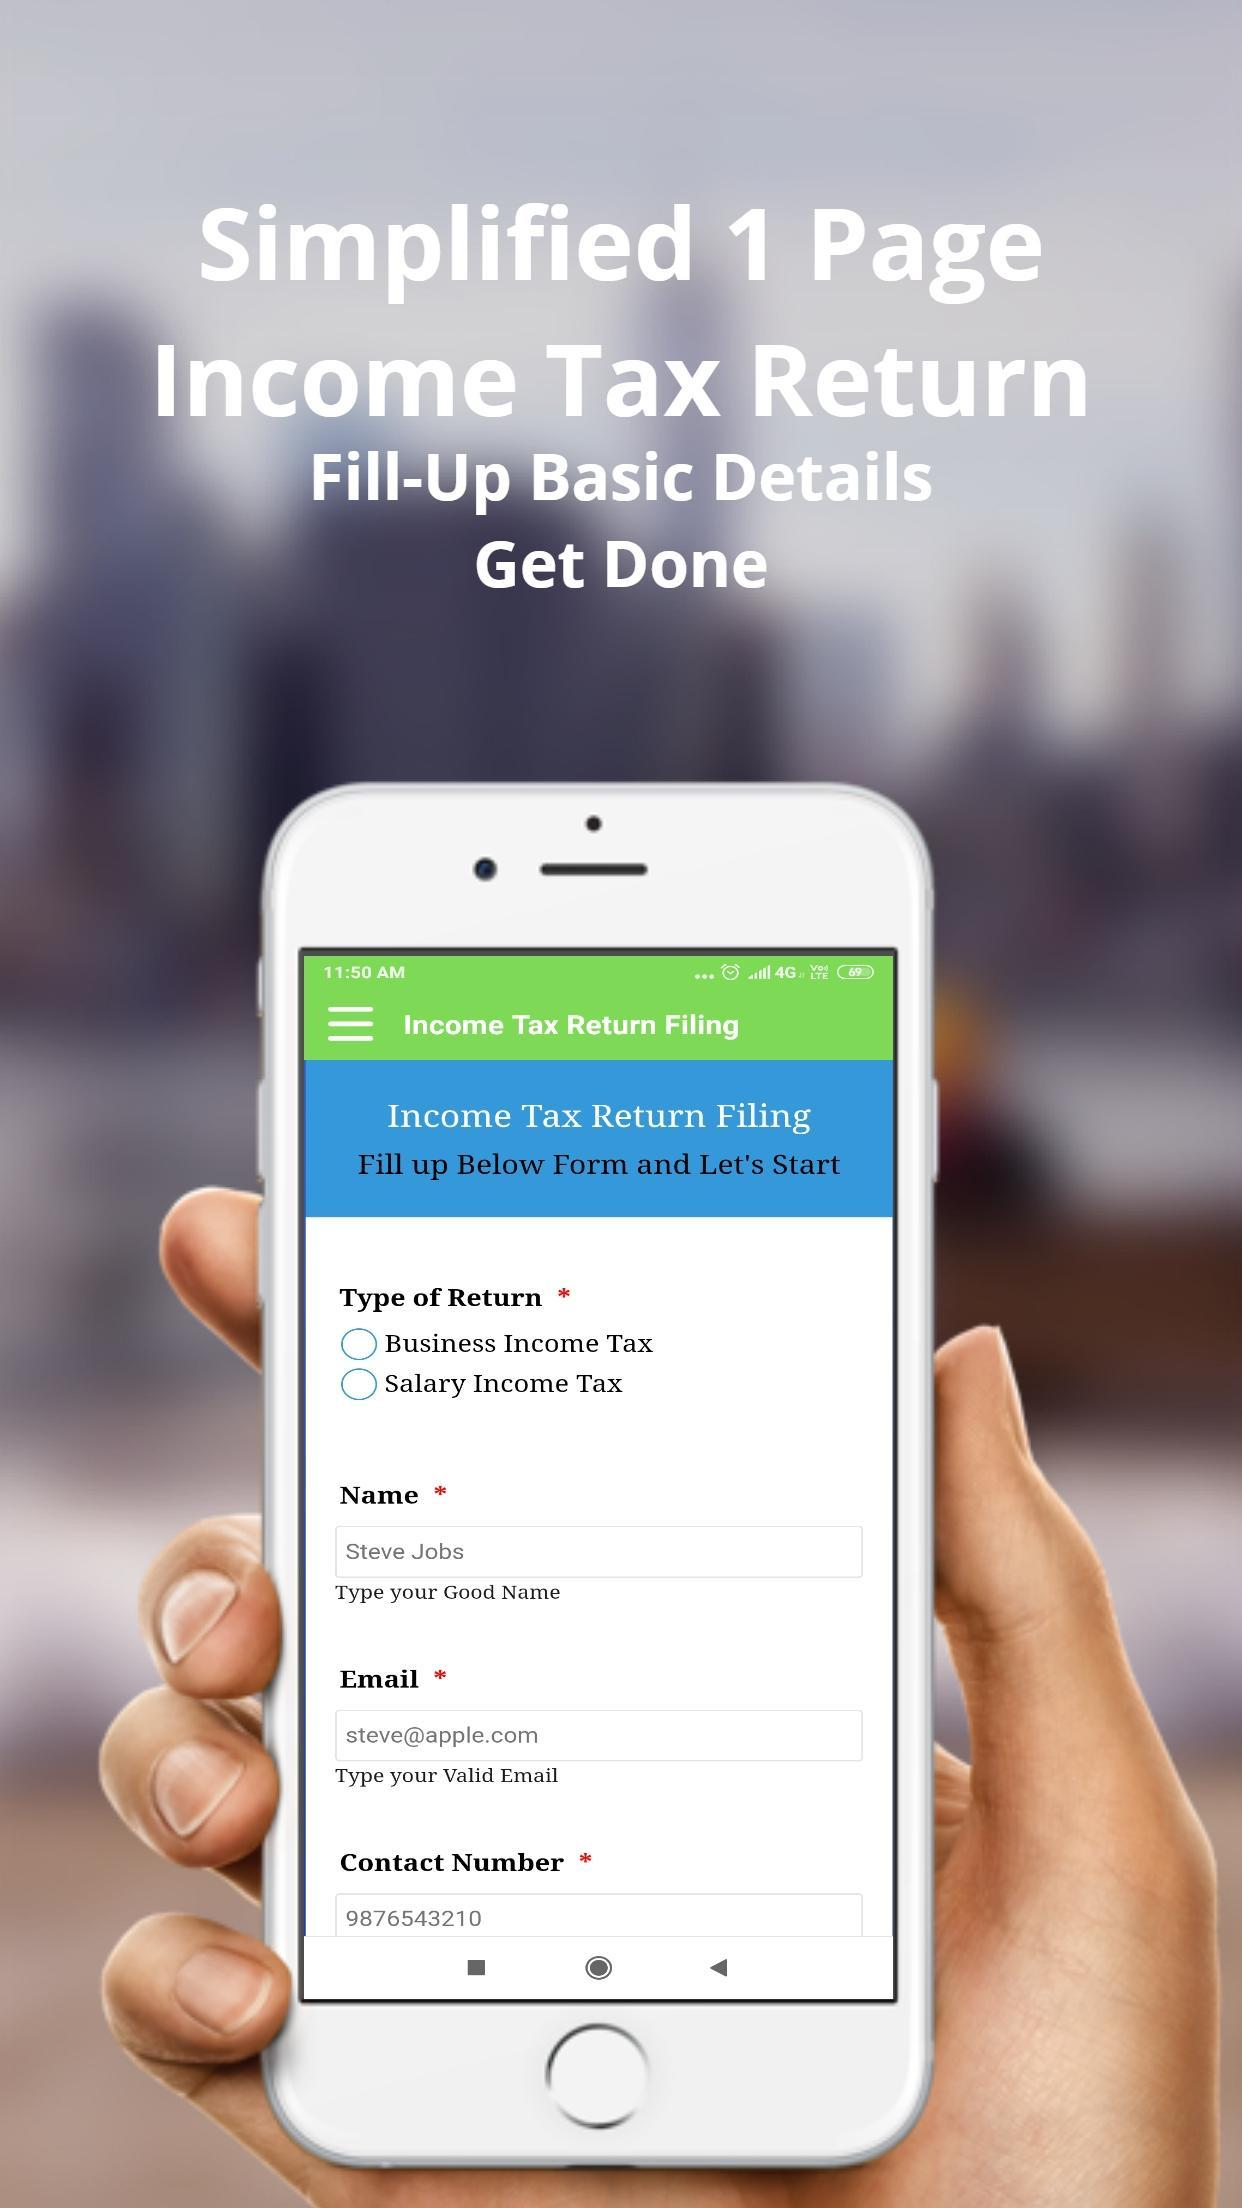 Income Tax Return Filing App : Efiling App 2019 for Android - APK